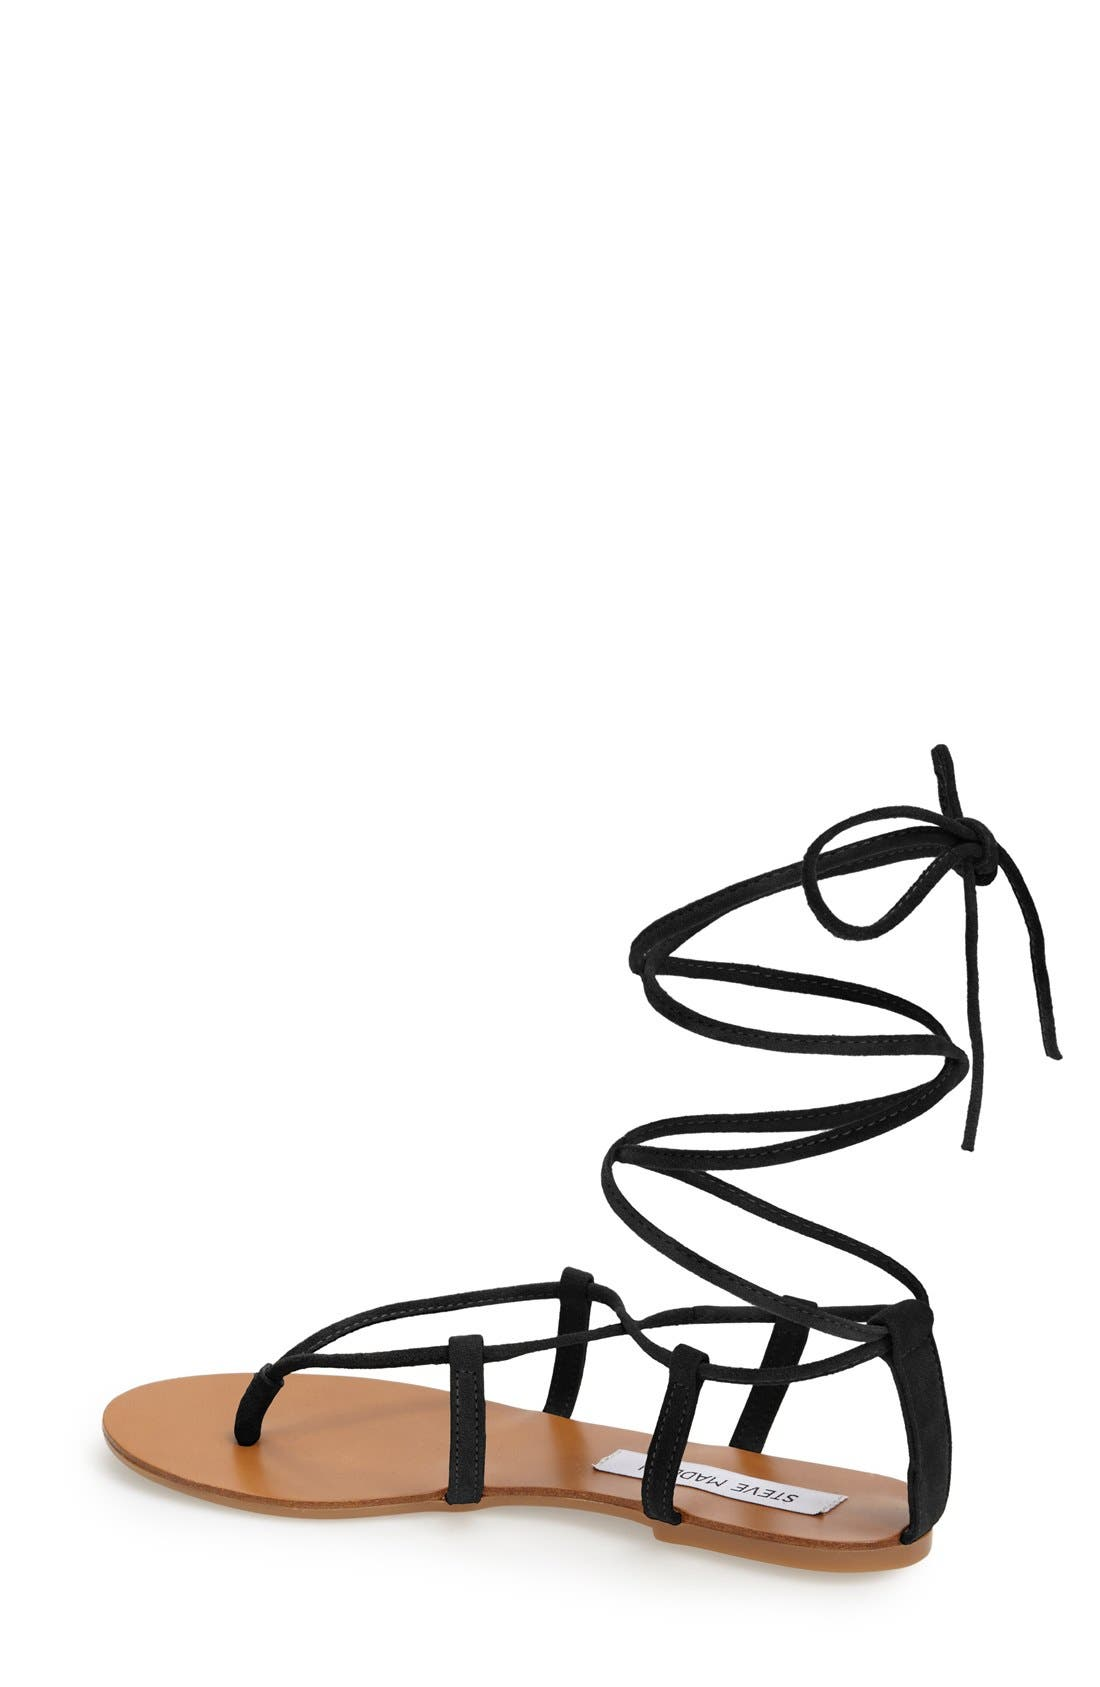 'Werkit' Gladiator Sandal,                             Alternate thumbnail 2, color,                             001